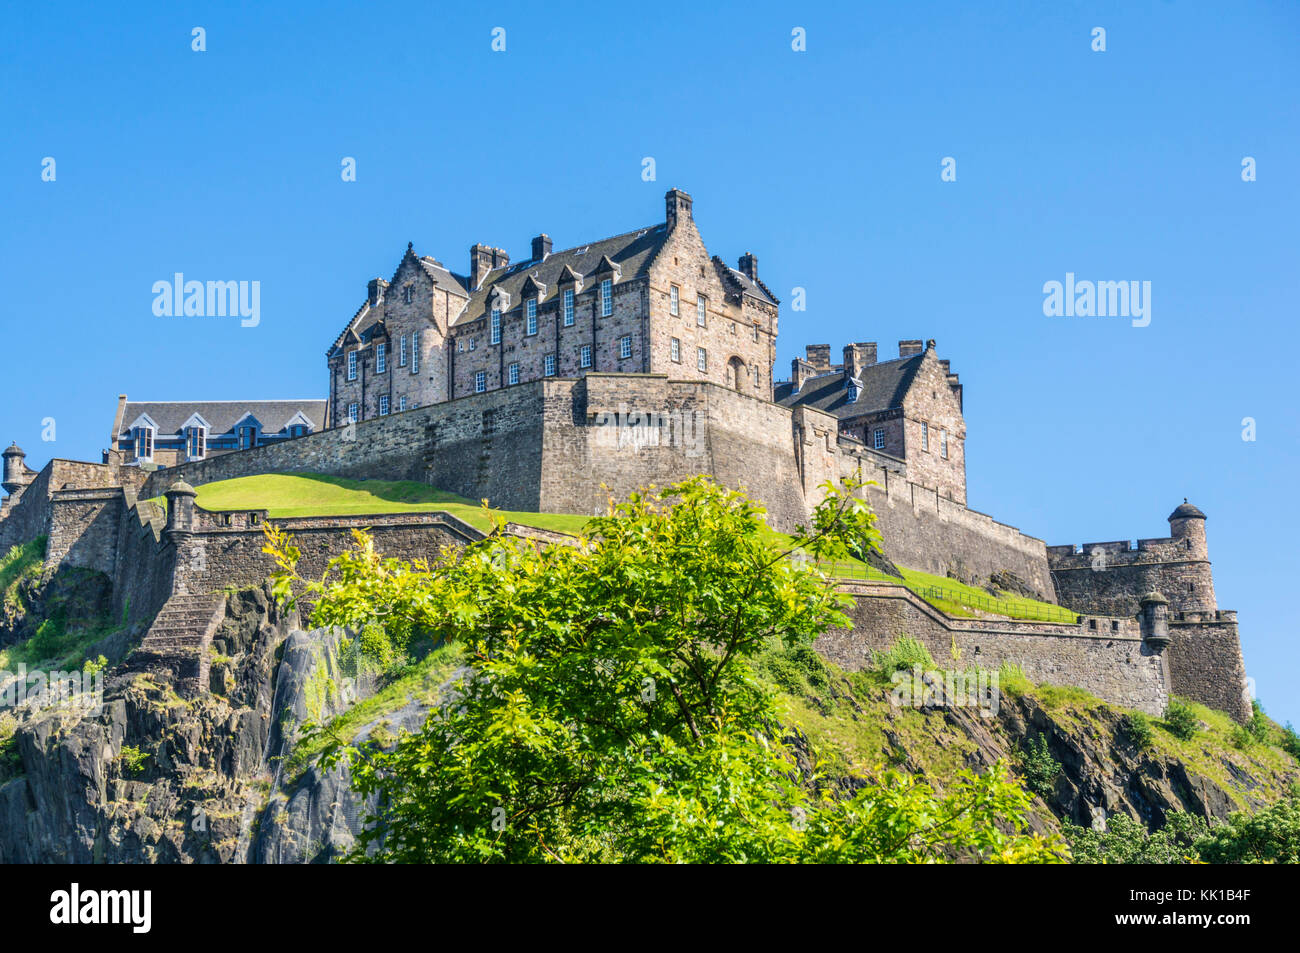 Edinburgh Castle scotland castle edinburgh scottish castle edinburgh  Old Town Edinburgh Midlothian Scotland UK - Stock Image